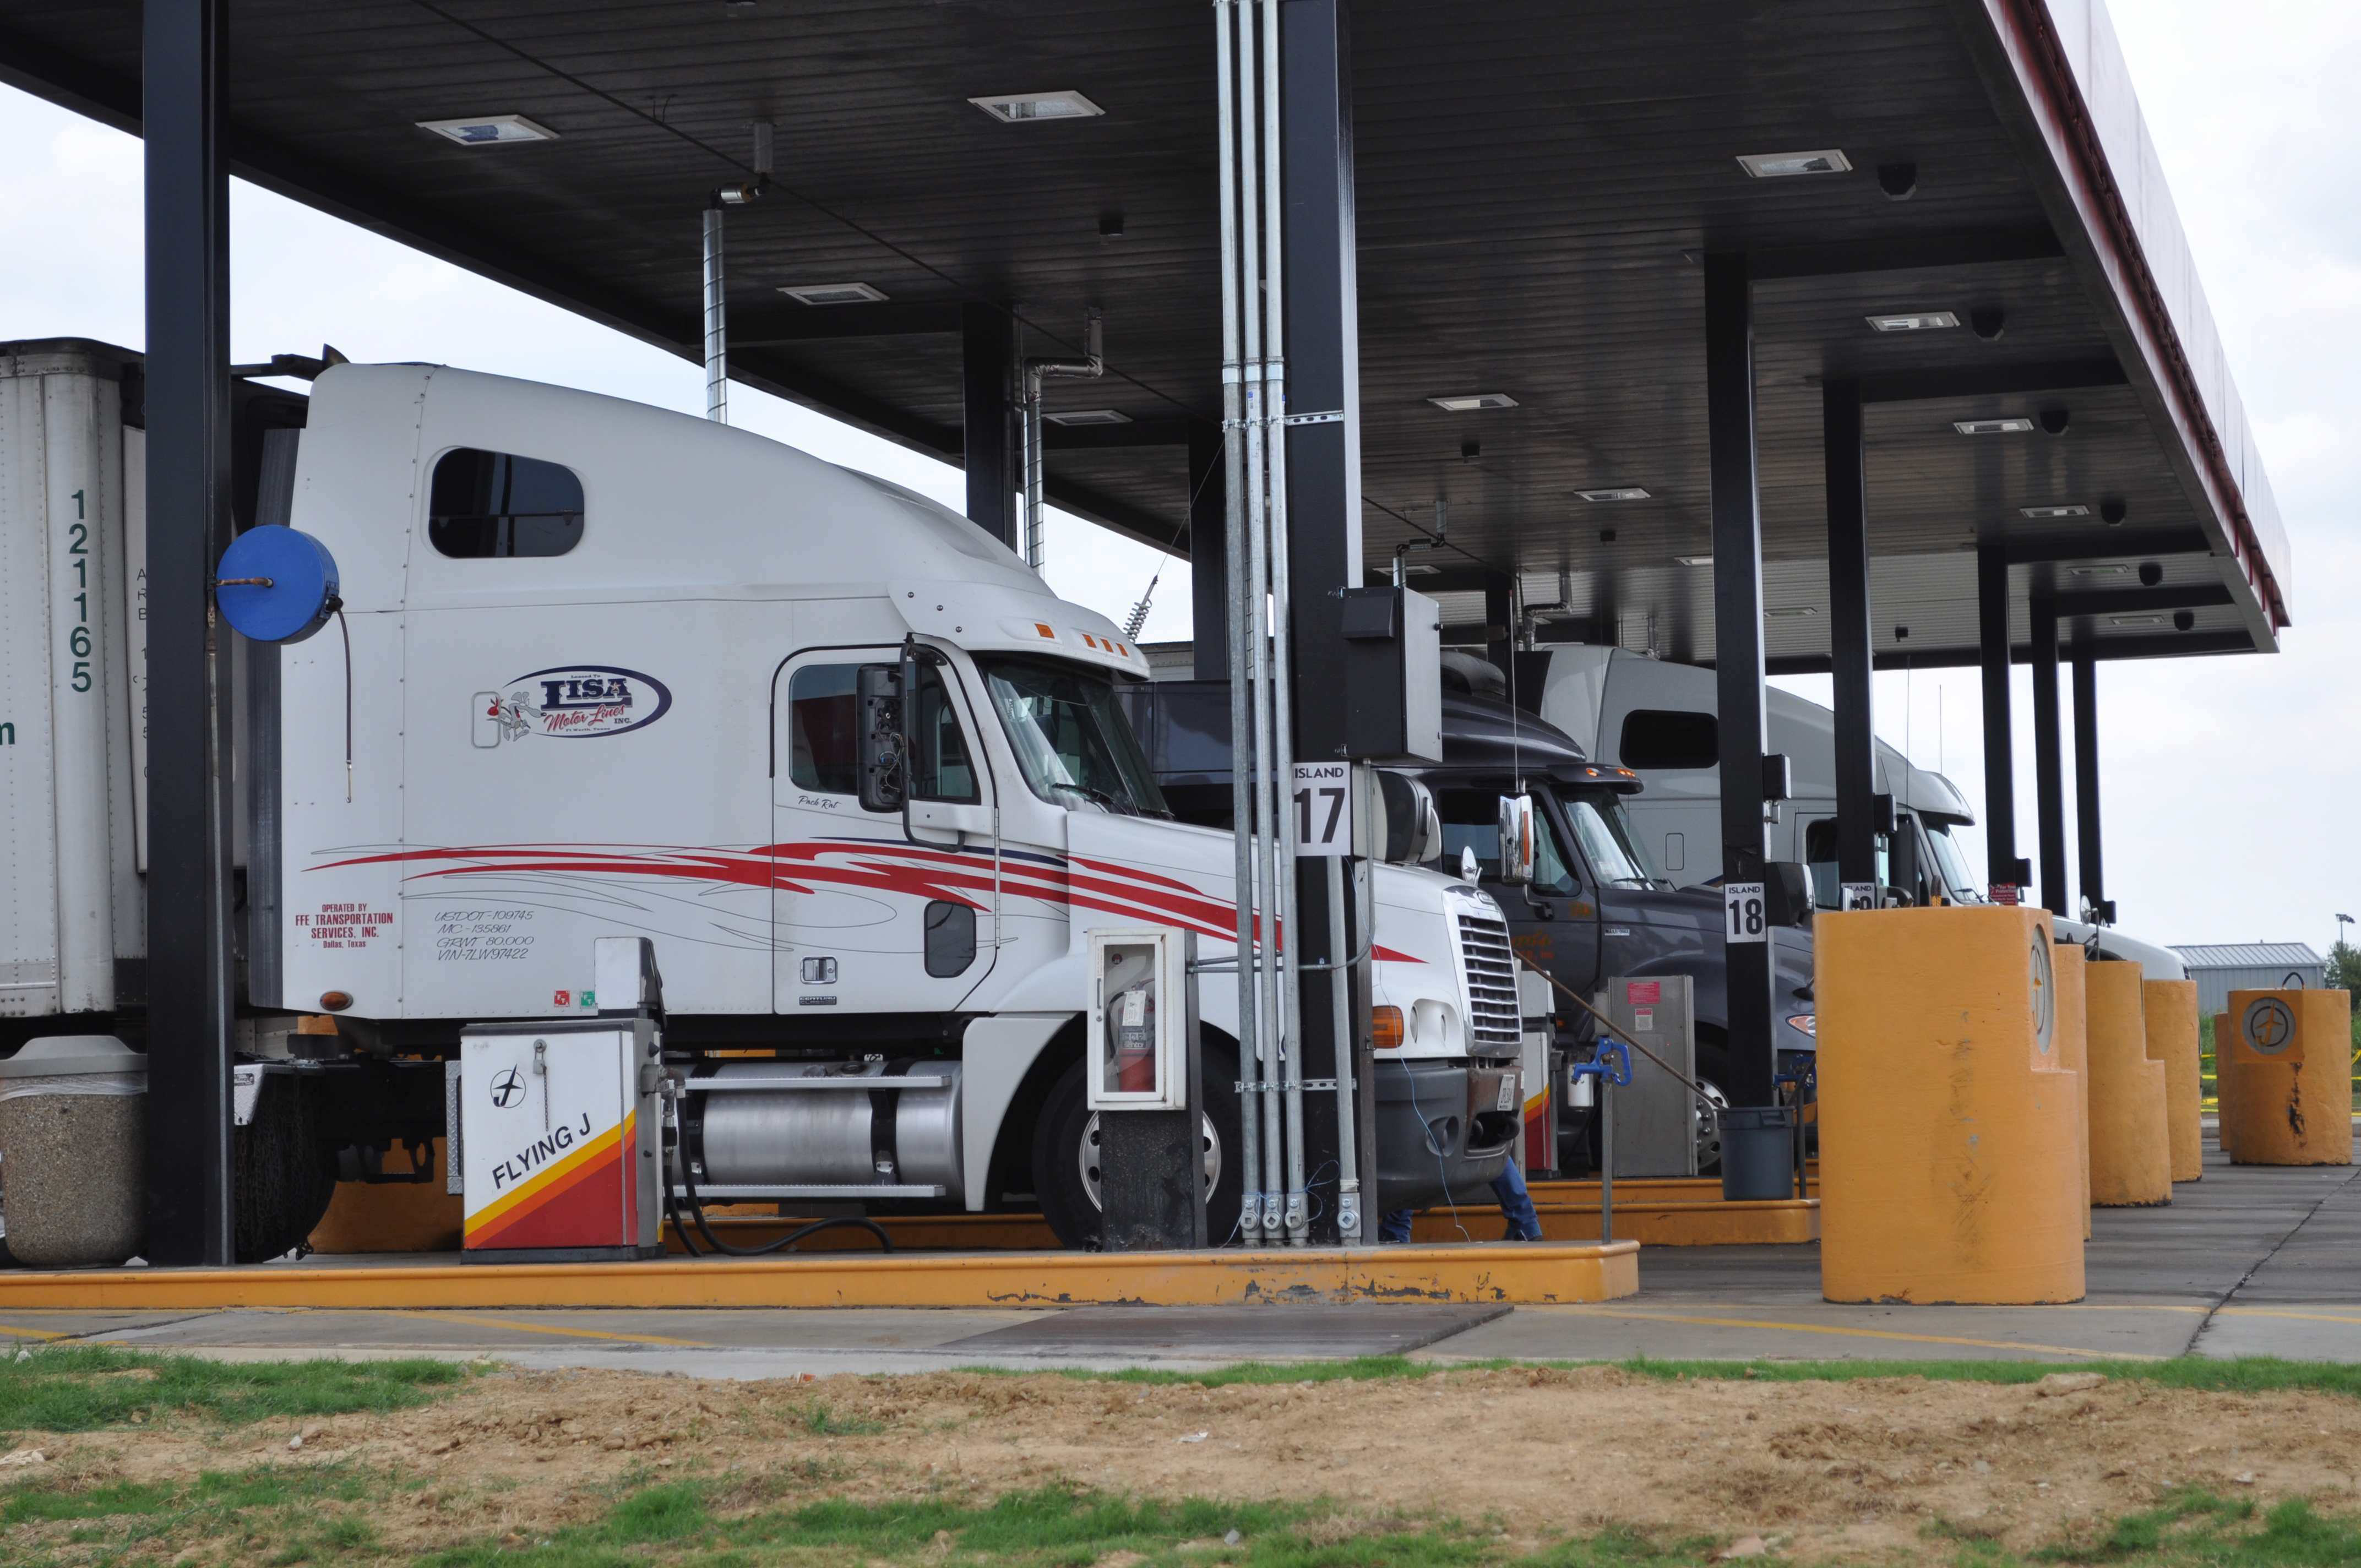 Diesel fuel taxes increase in a dozen states